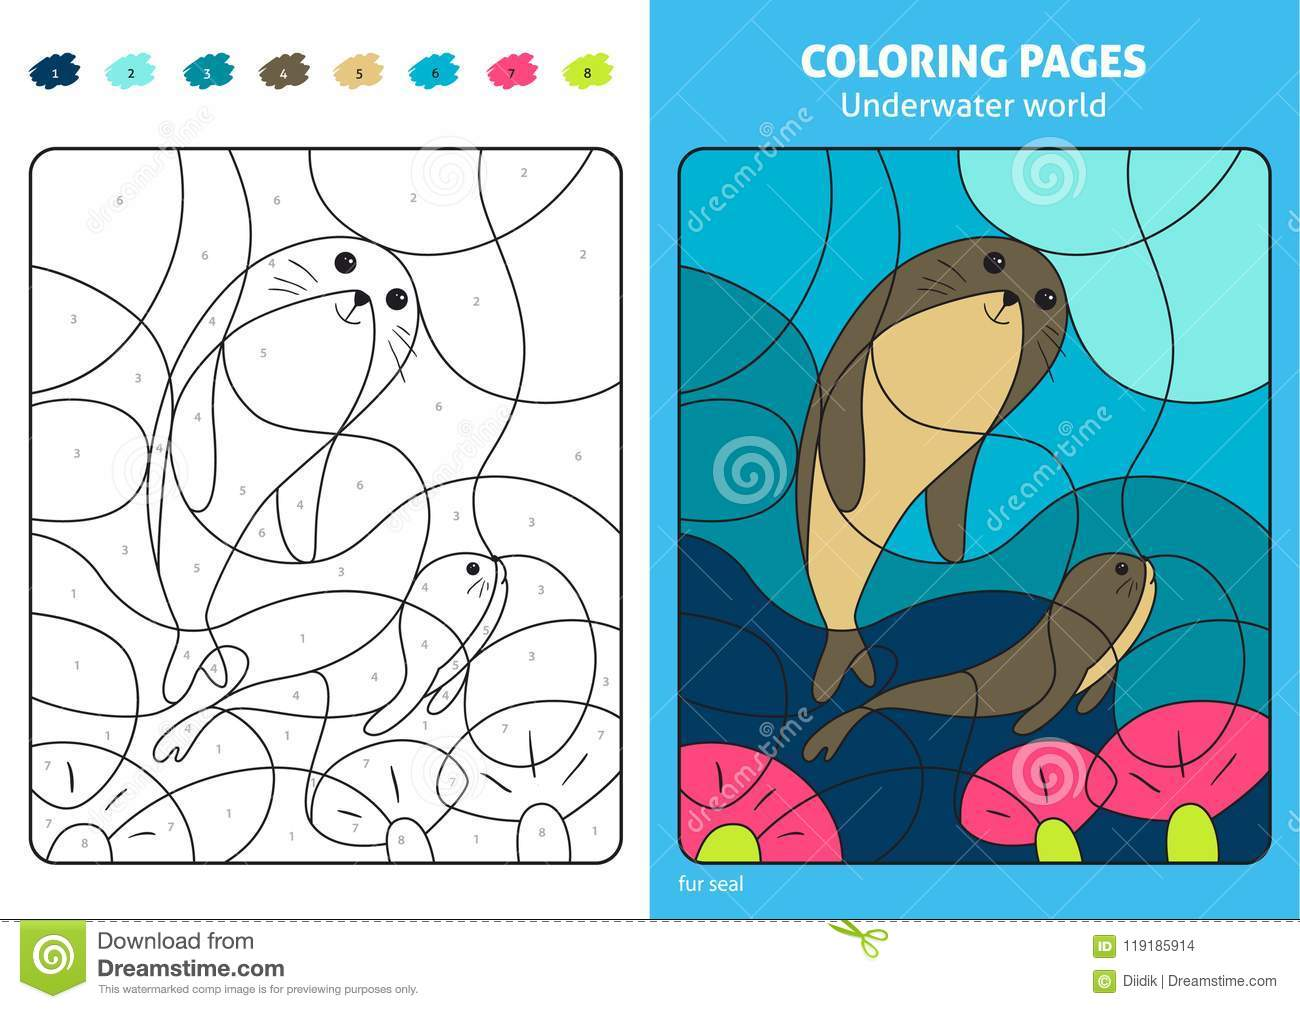 Underwater World Coloring Page For Kids, Fur Seal. Stock Vector ...